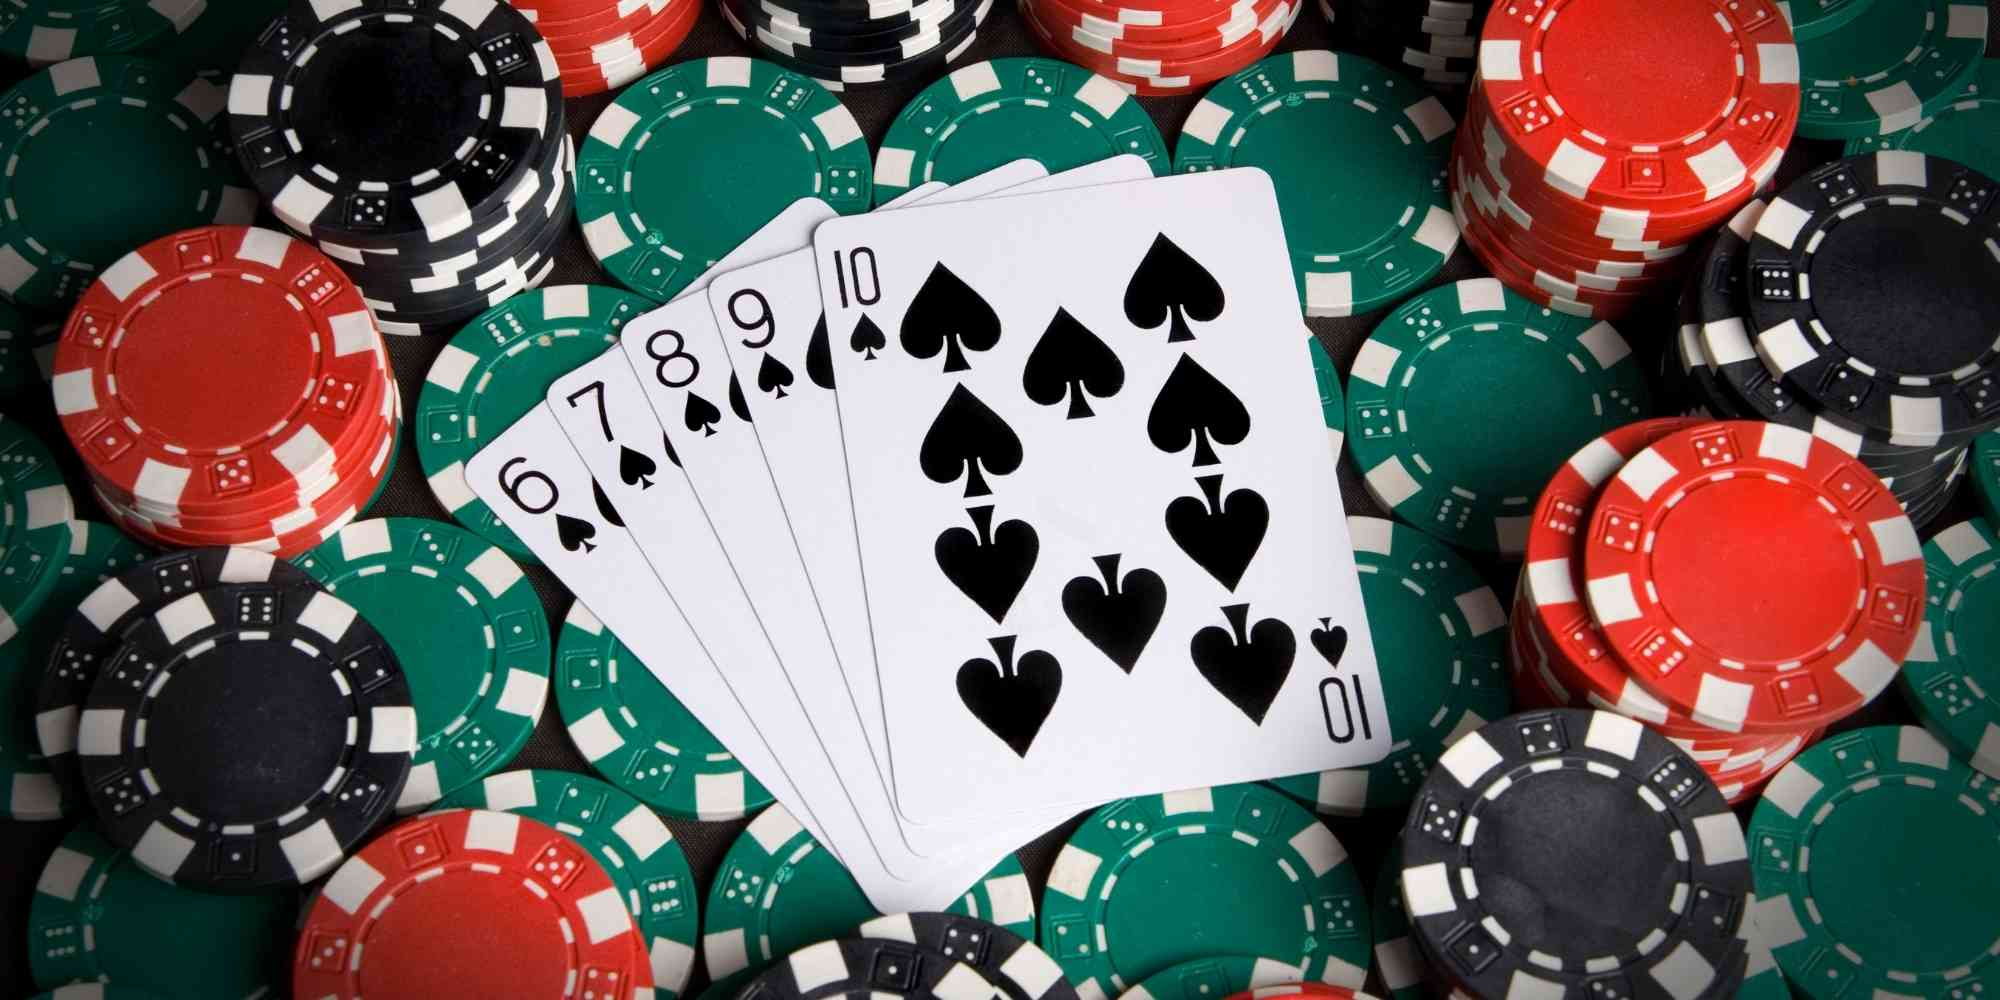 What's The Second Best Possible Hand In Poker?